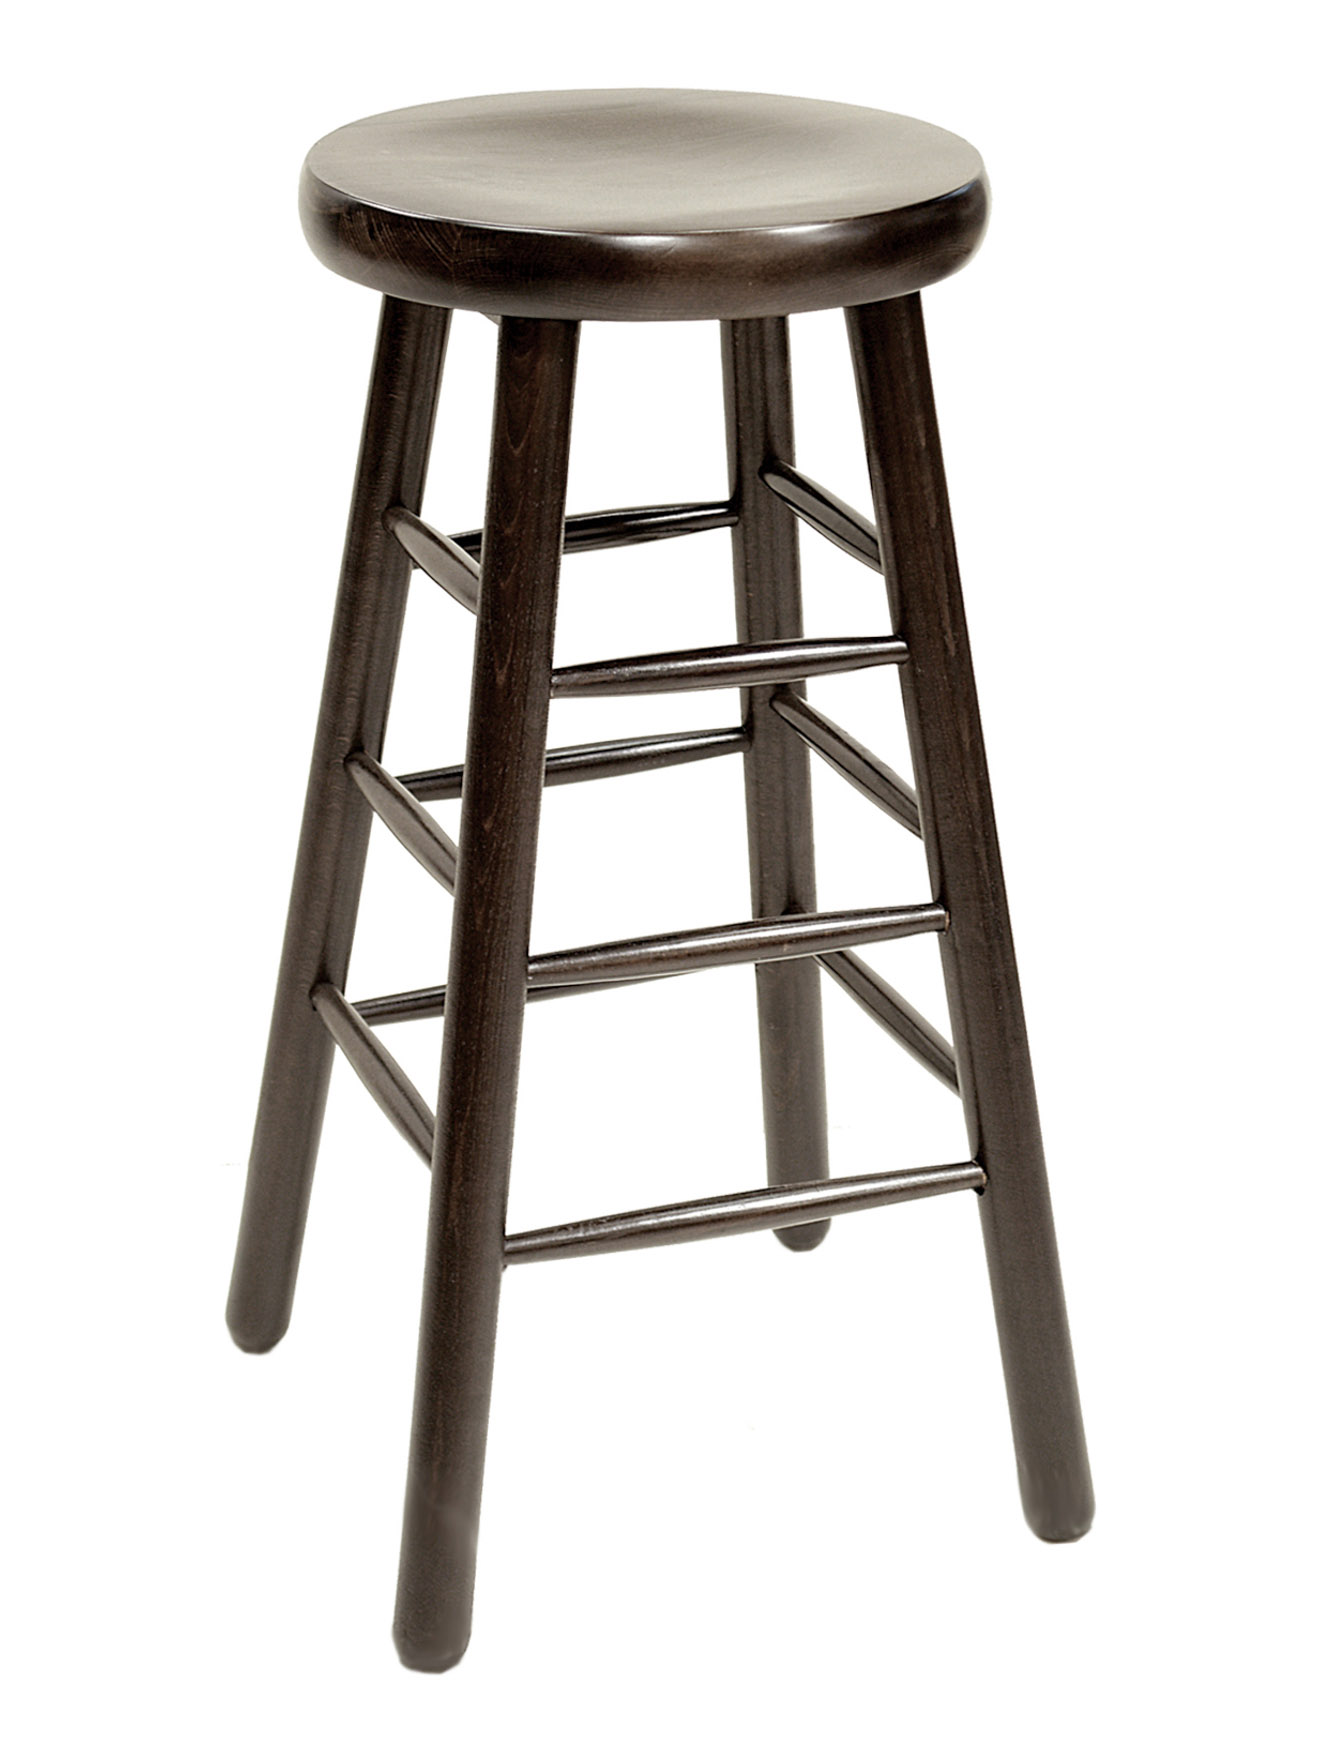 30 Inch Backless Bar Stool Sb30b Commercial Restaurant